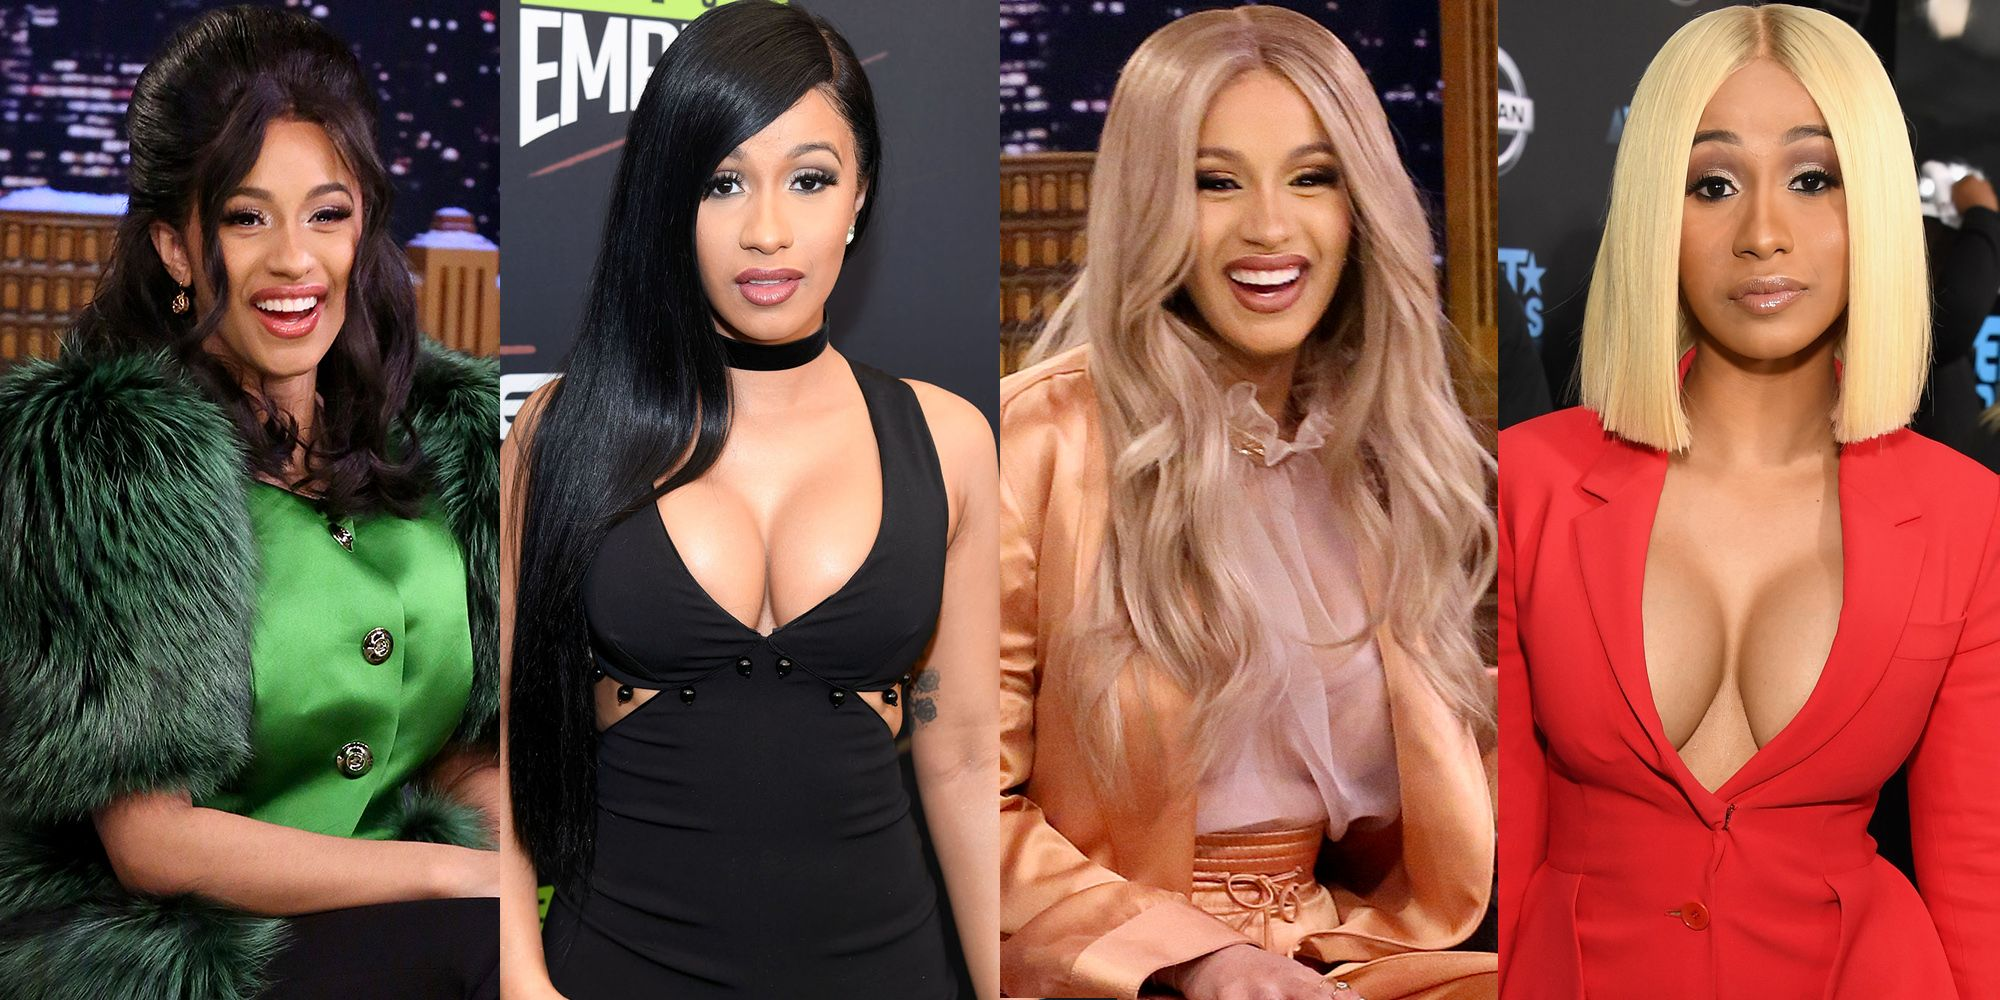 Cardi B Facts - 40 Things You Didnu0027t Know About Cardi B